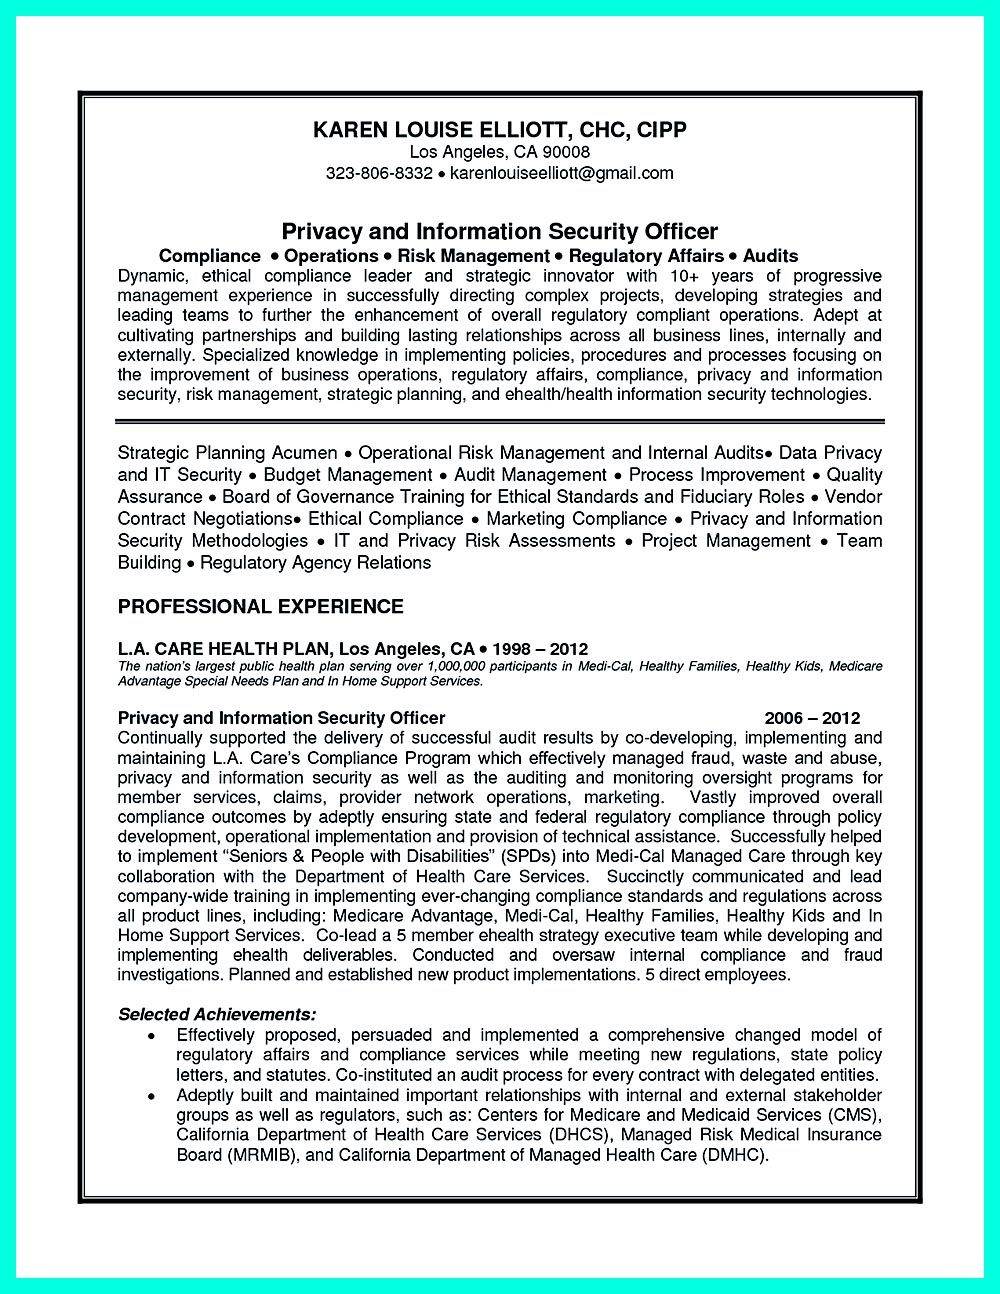 Compliance officer resume is well designed to get the